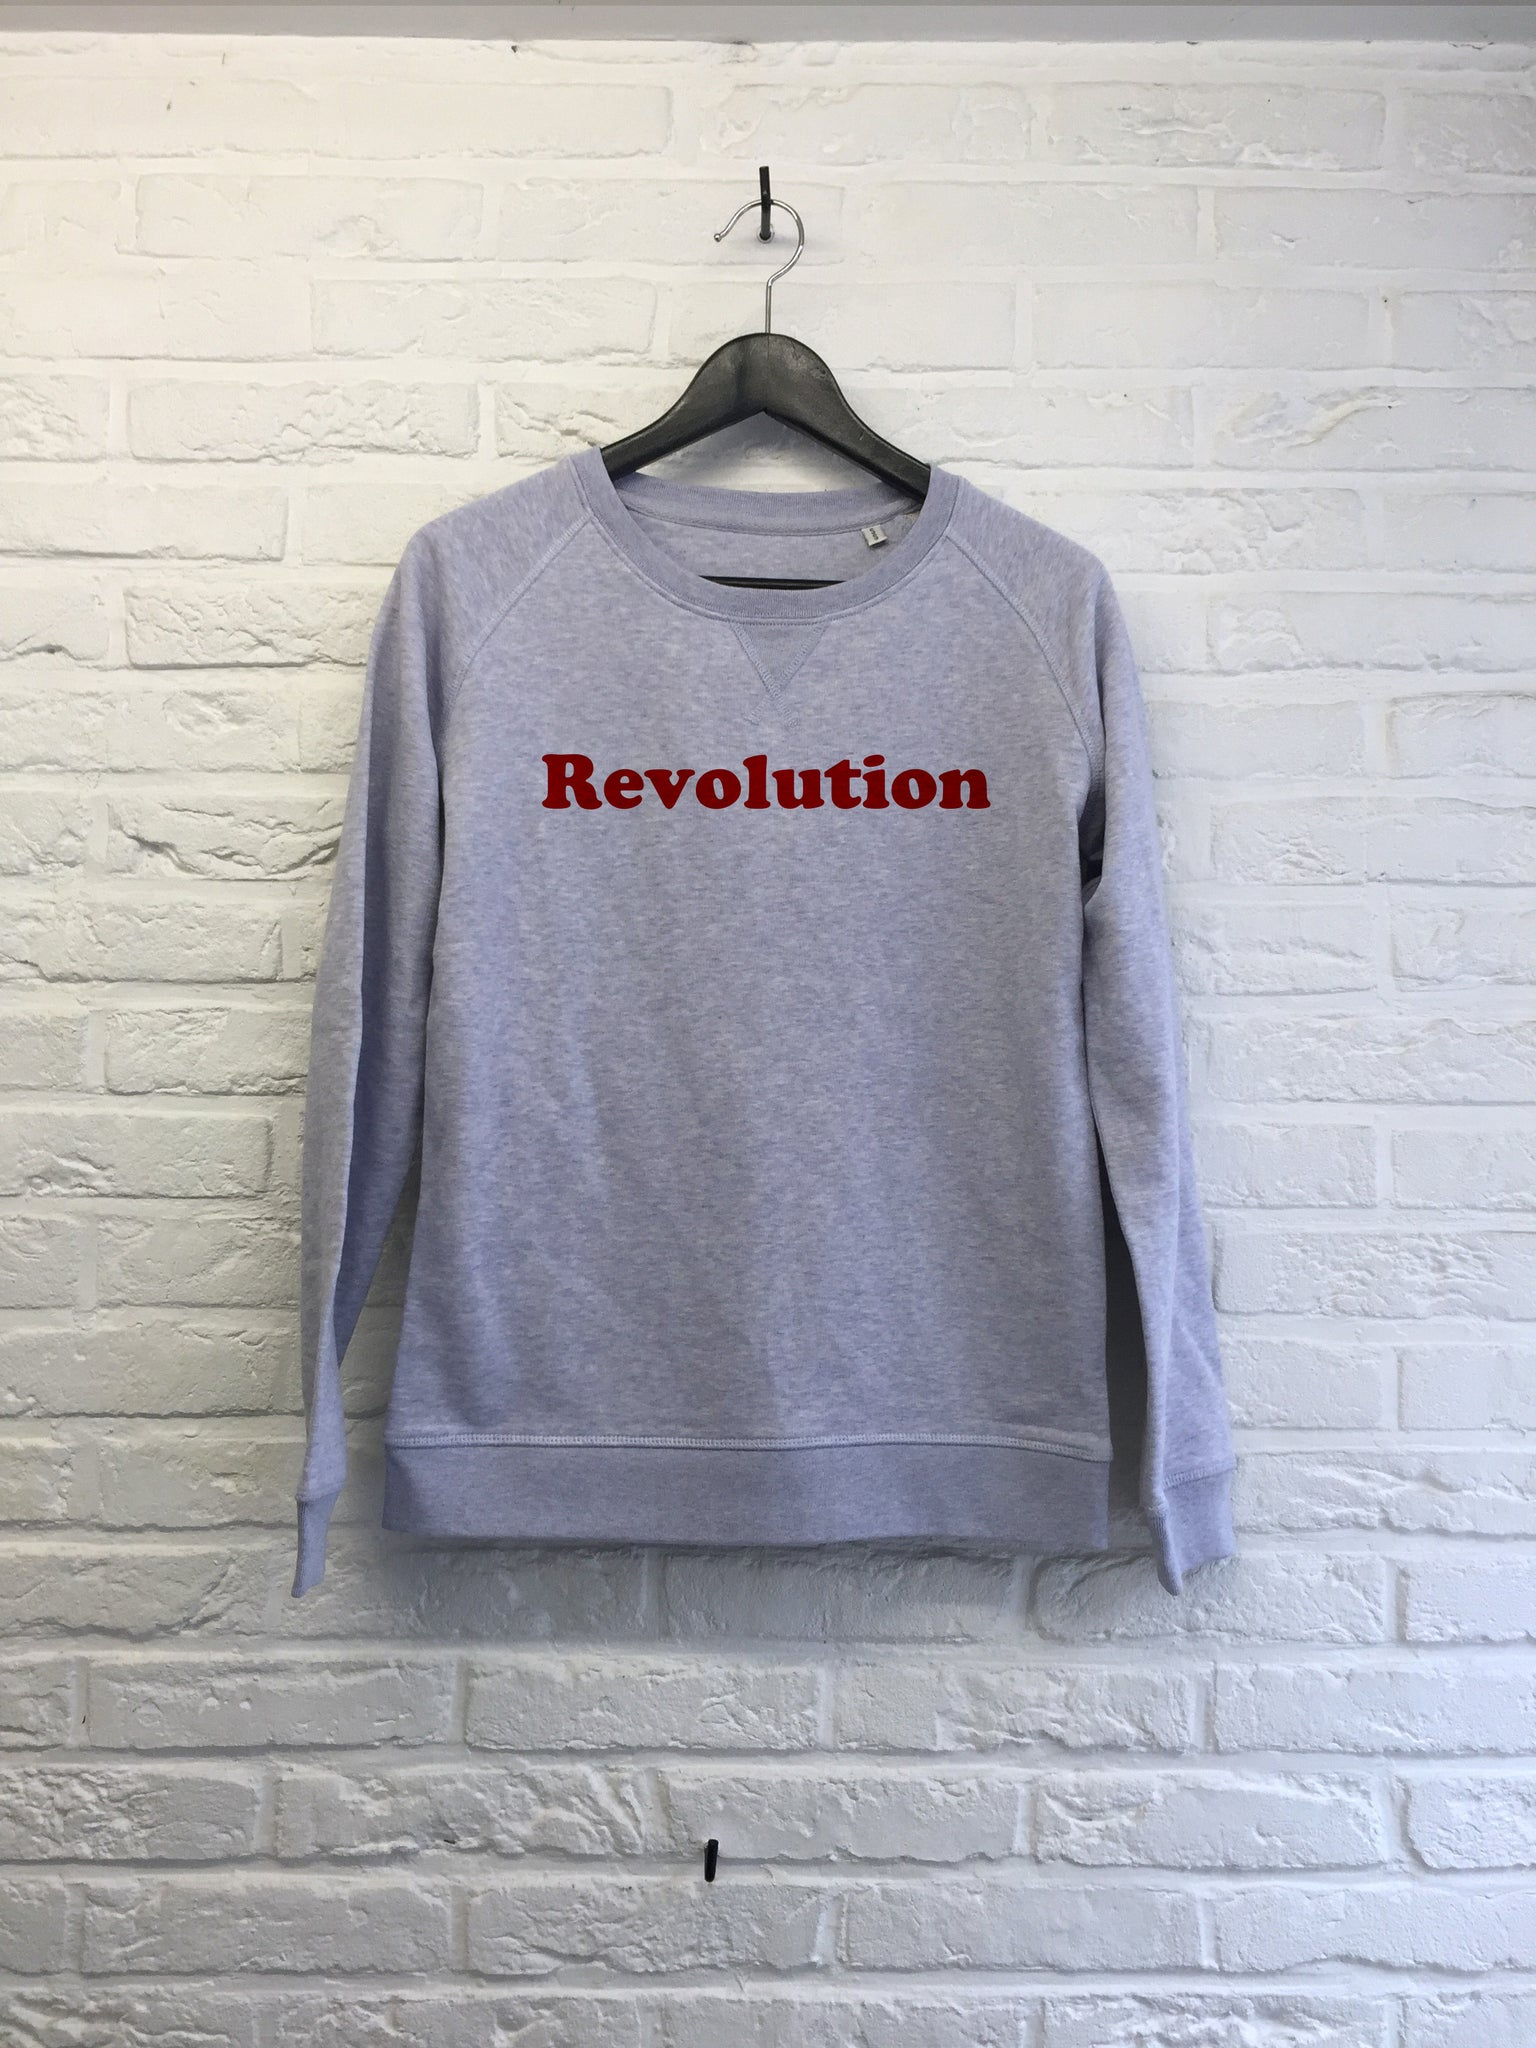 Revolution - Sweat - Femme-Sweat shirts-Atelier Amelot